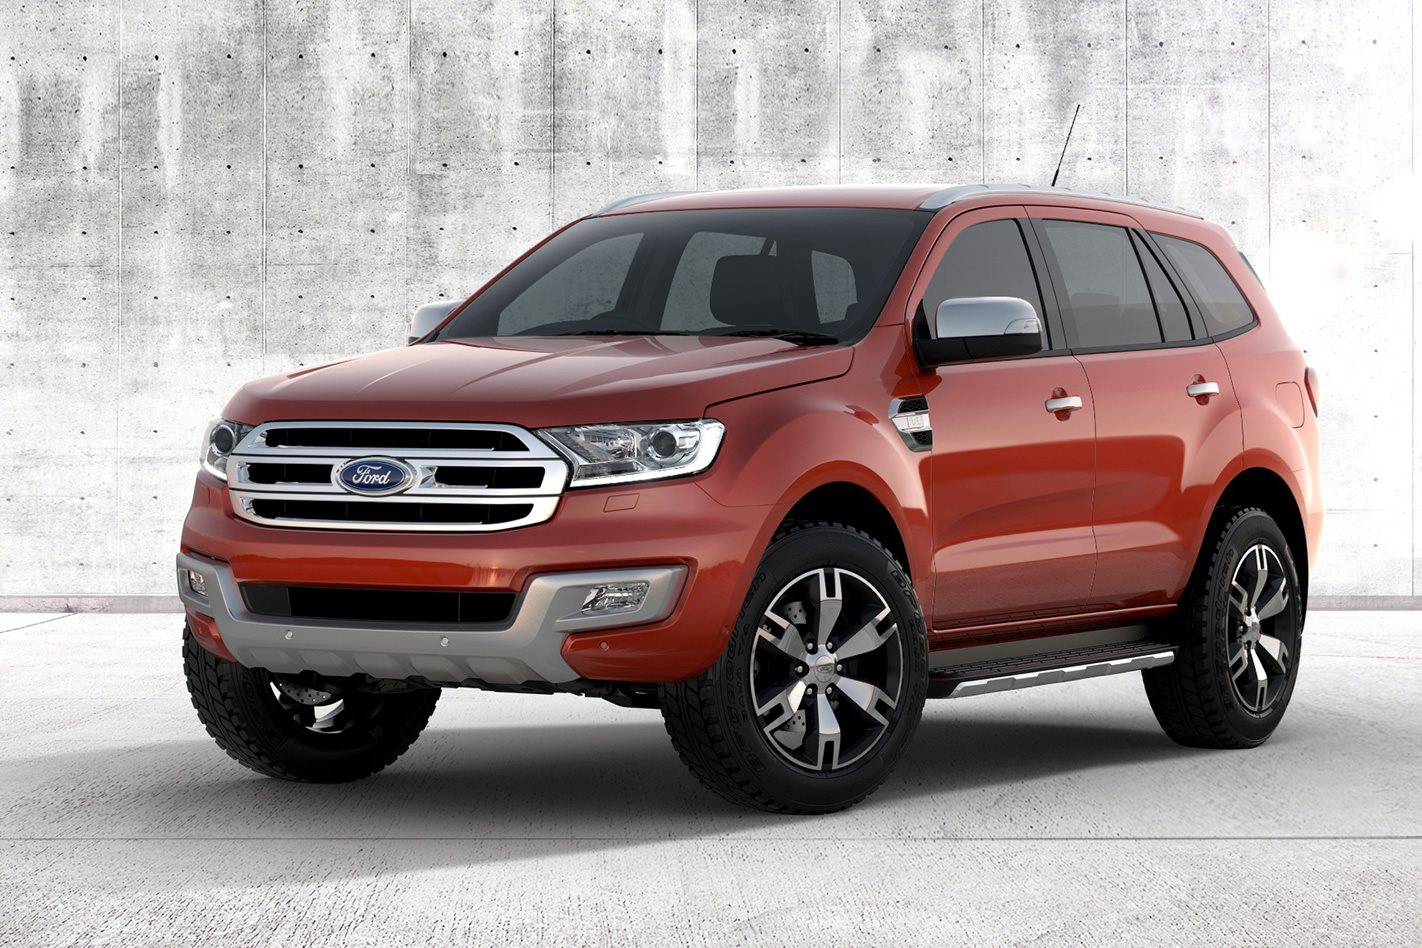 2018-Ford-Everest-Titanium.jpg